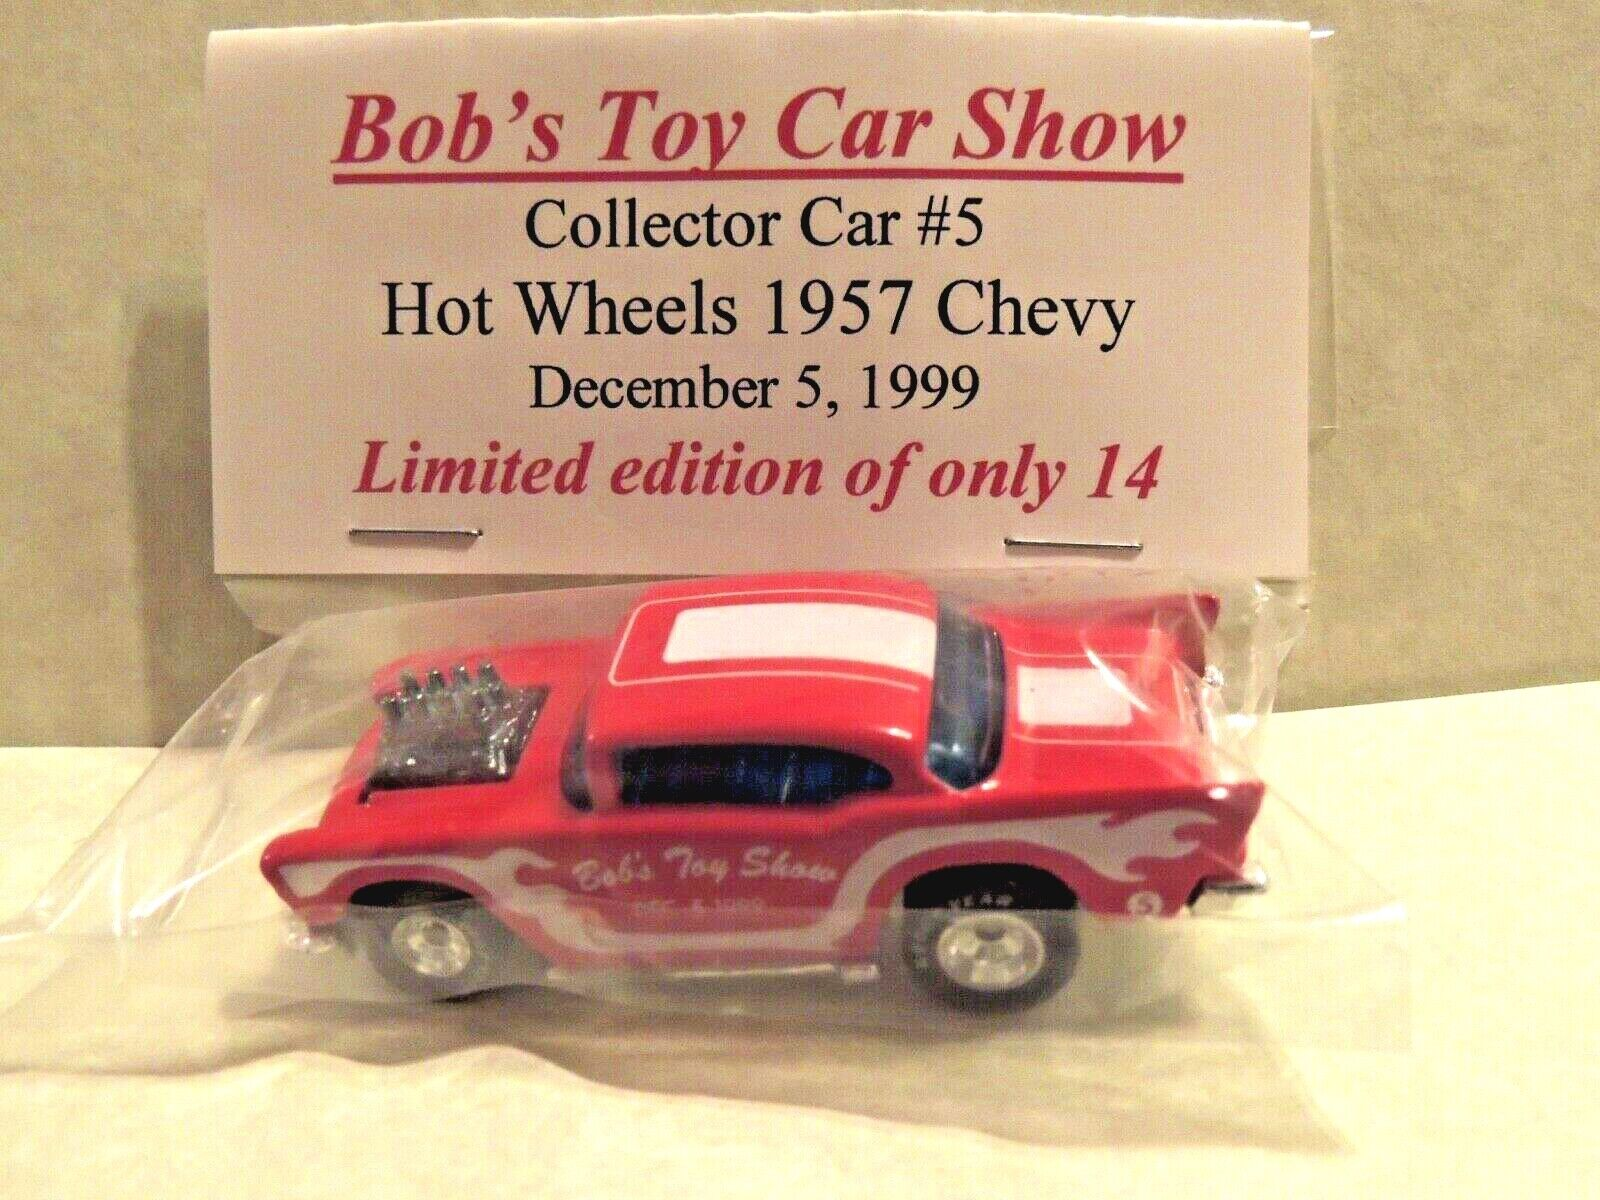 Hot Wheels'57 CHEVY  Bob's Toy Show 1999, California  SUPER RARE  1 de 14